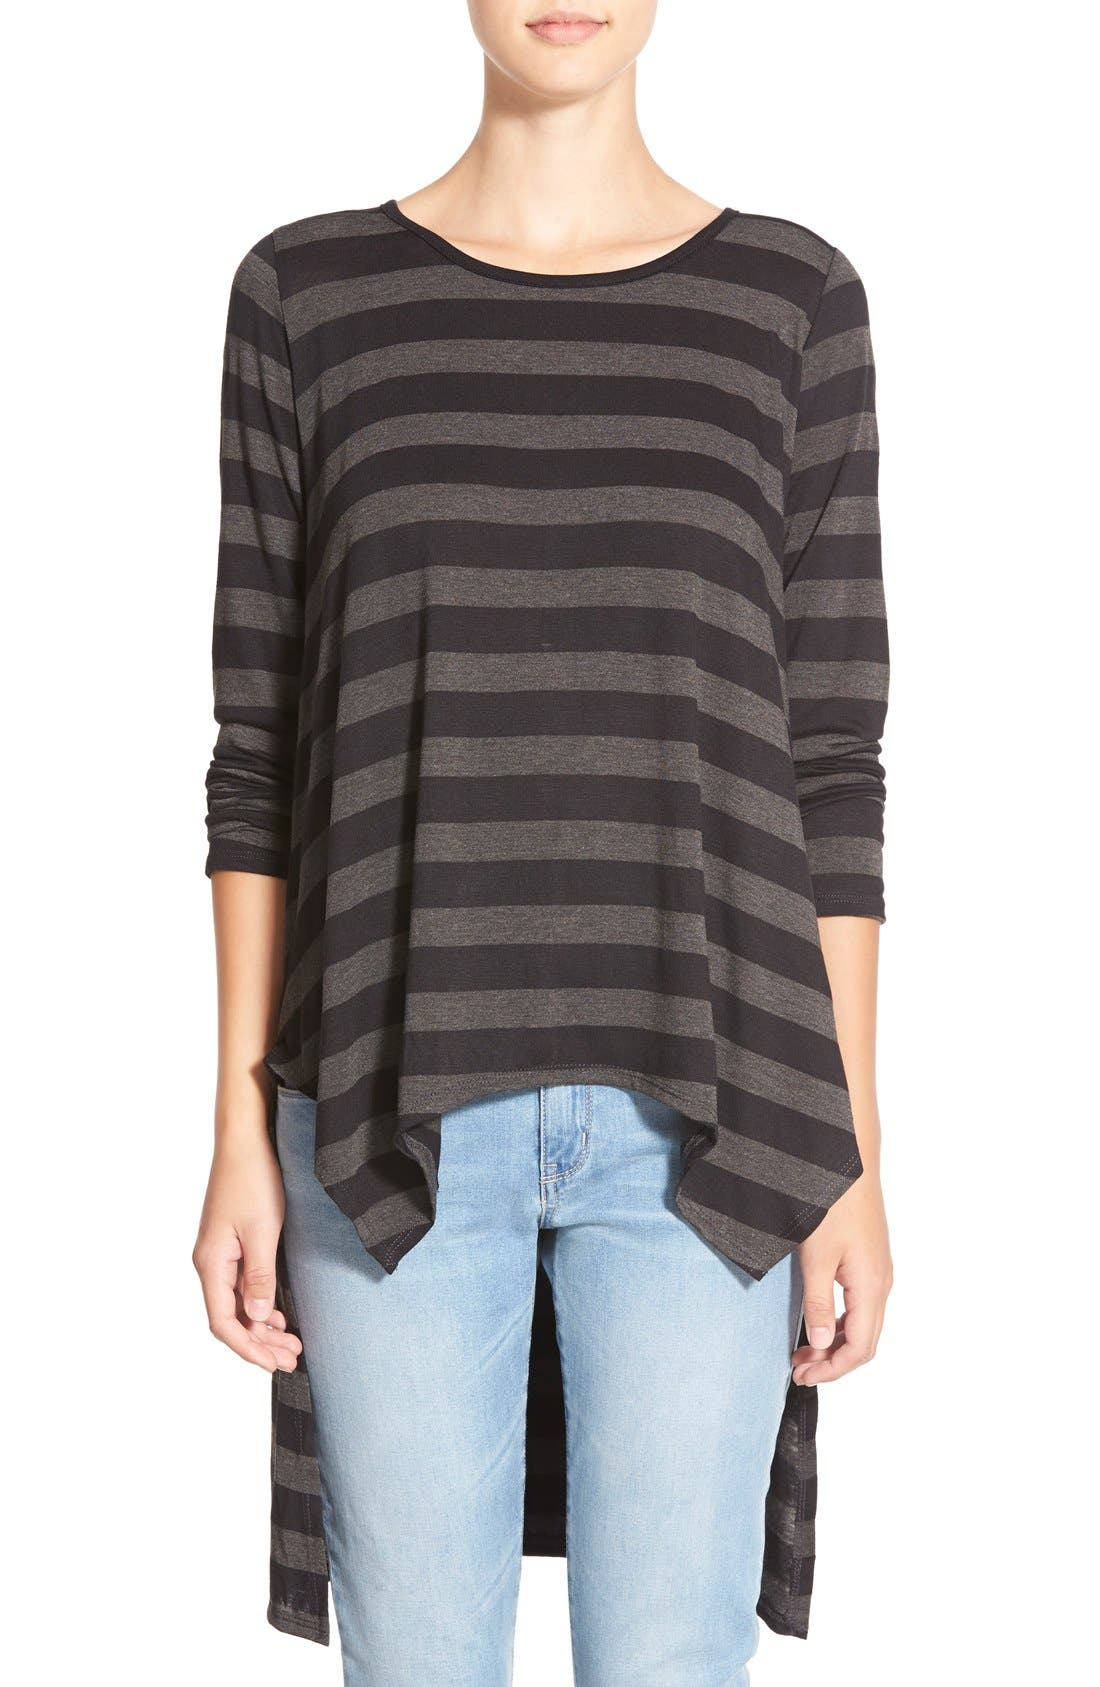 BP., Stripe High/Low Tunic Tee, Main thumbnail 1, color, 001